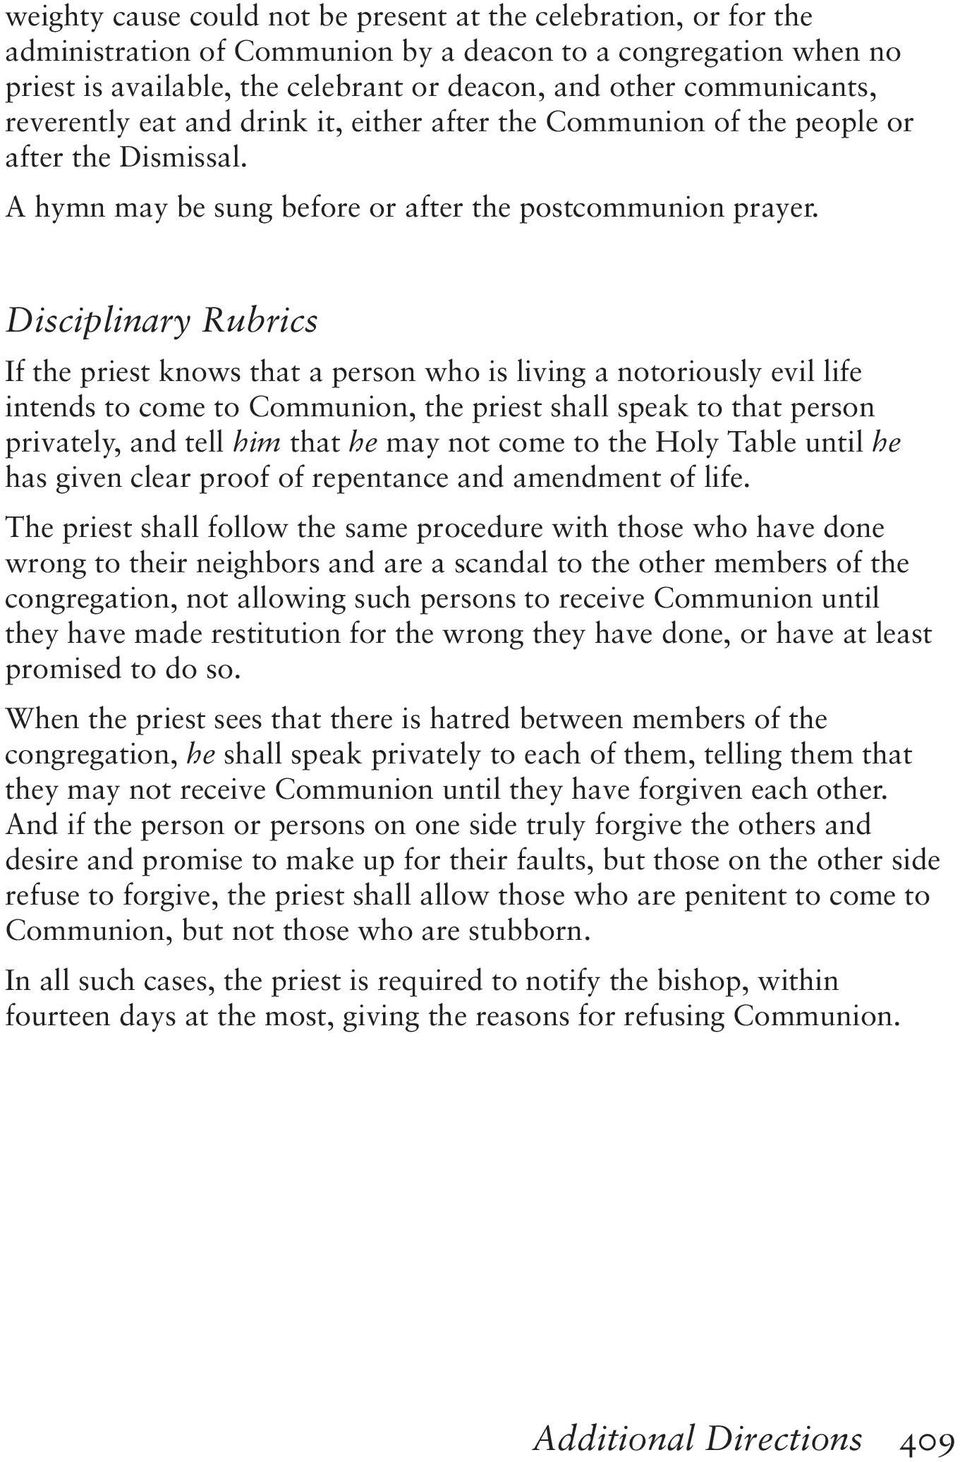 Disciplinary Rubrics If the priest knows that a person who is living a notoriously evil life intends to come to Communion, the priest shall speak to that person privately, and tell him that he may